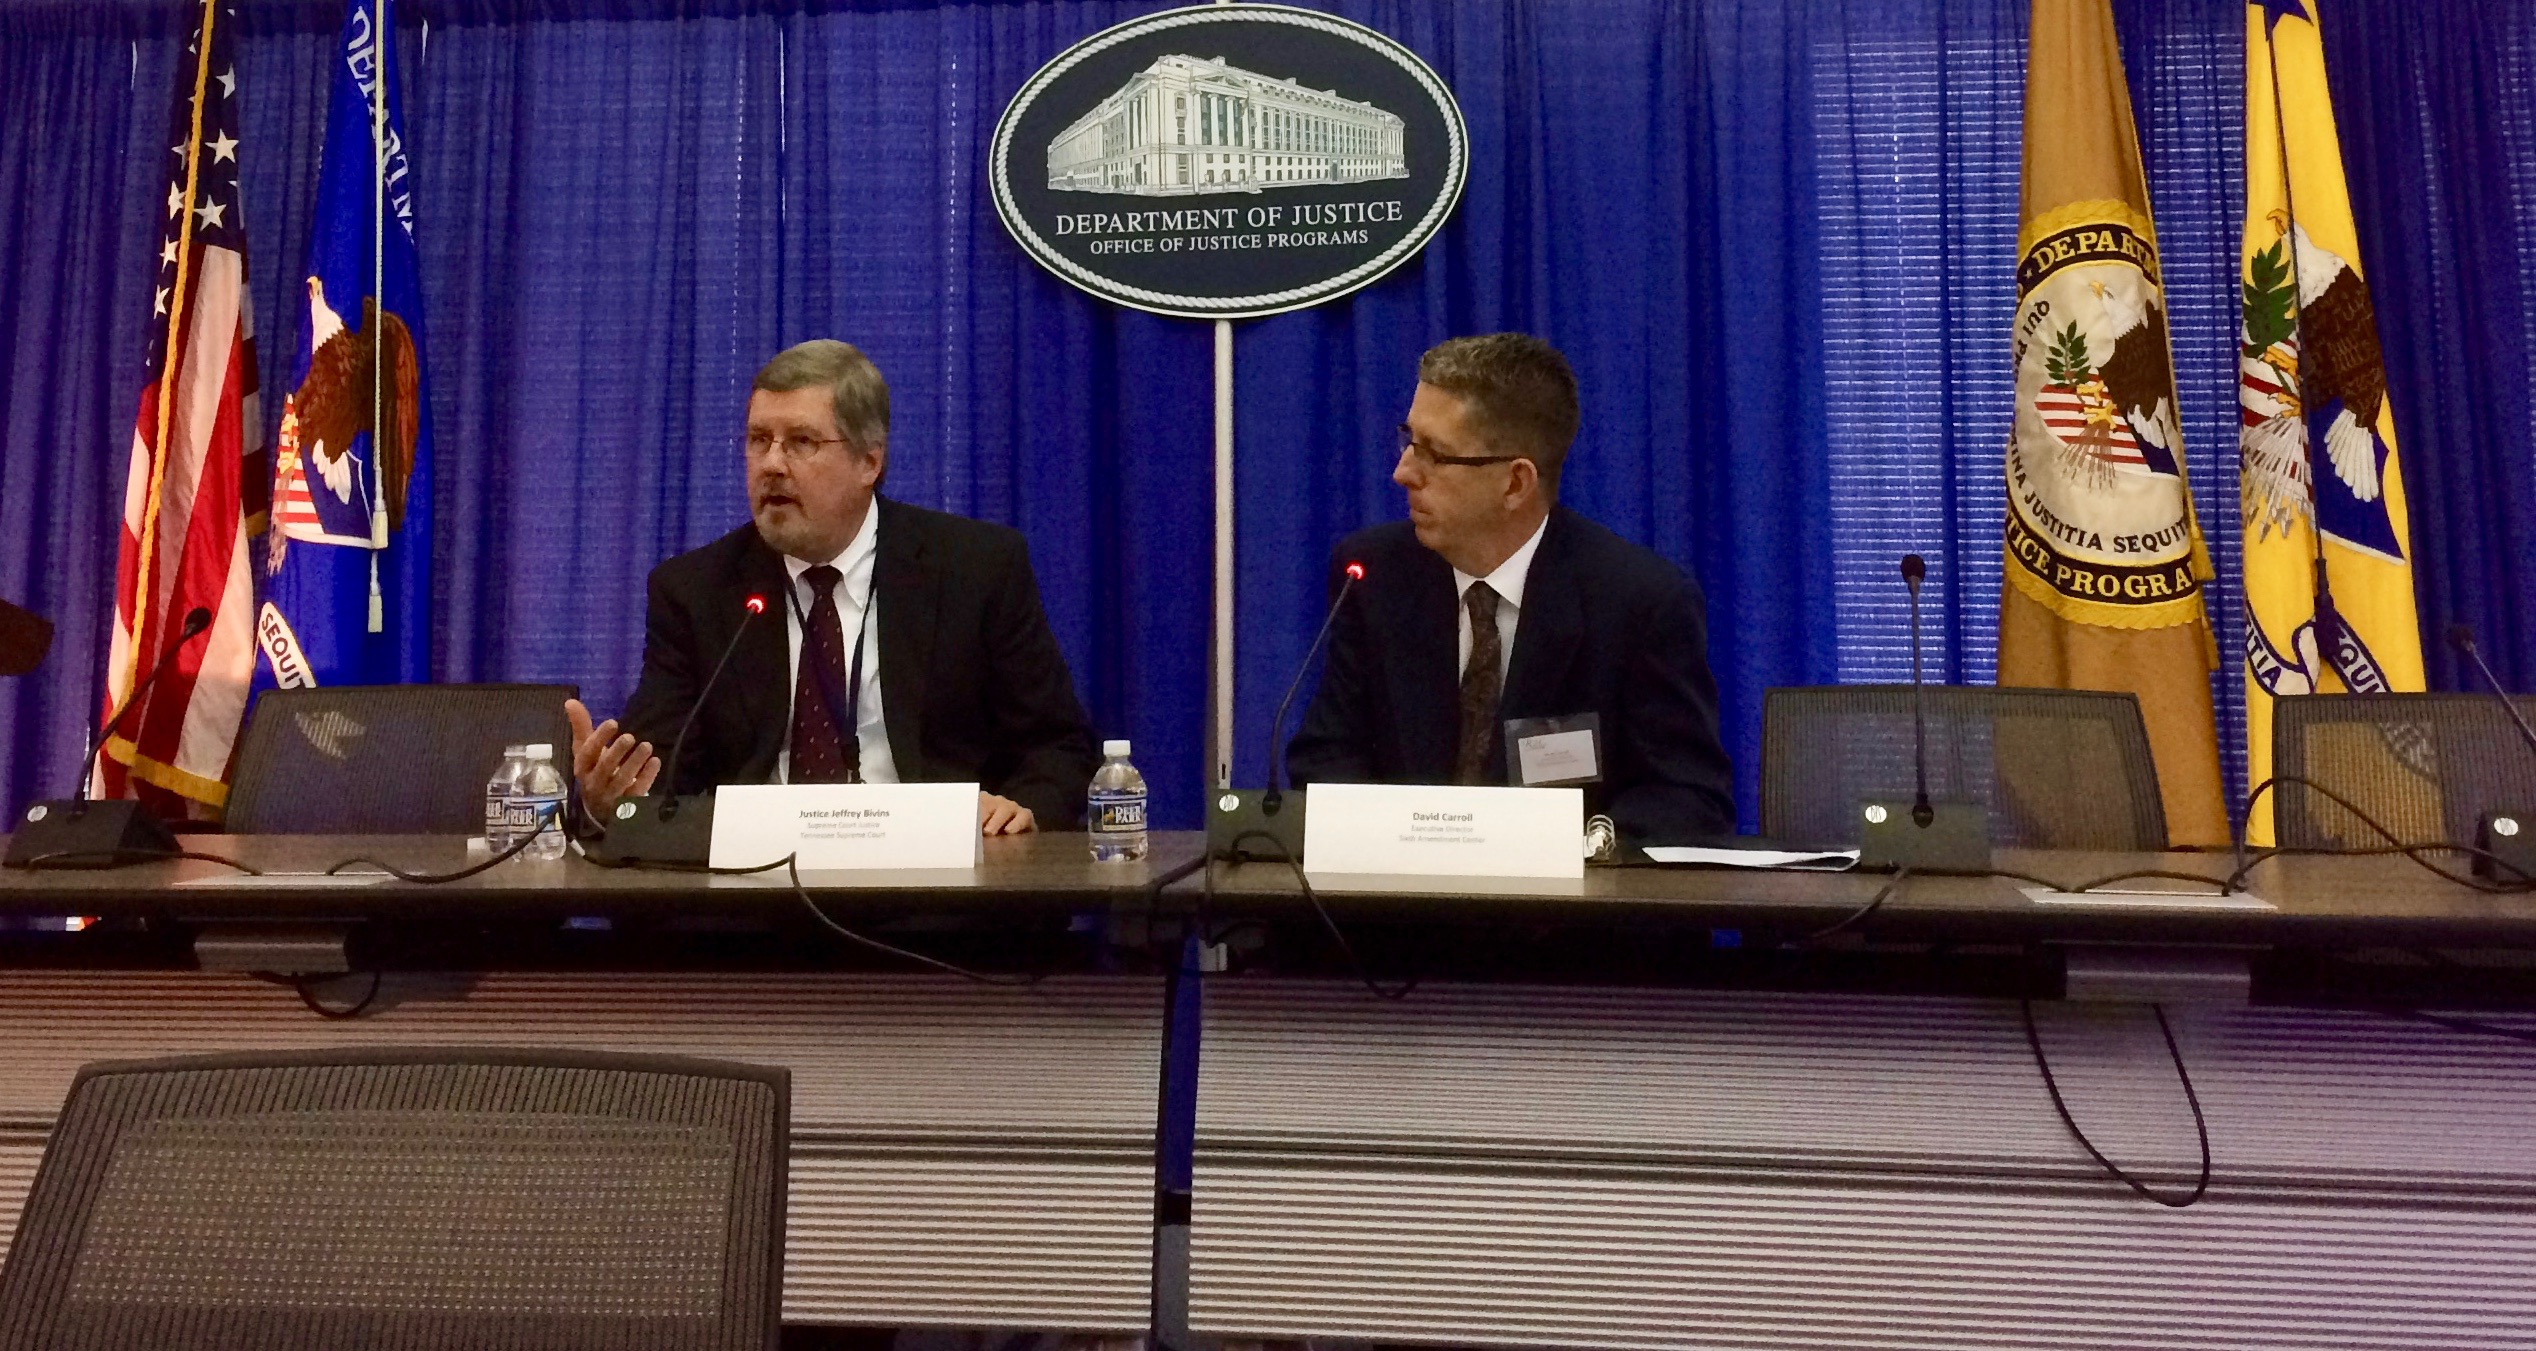 David Carroll (right) interviews Tennessee Set Chief Justice Bivens (left) at R2C 3rd annual meeting